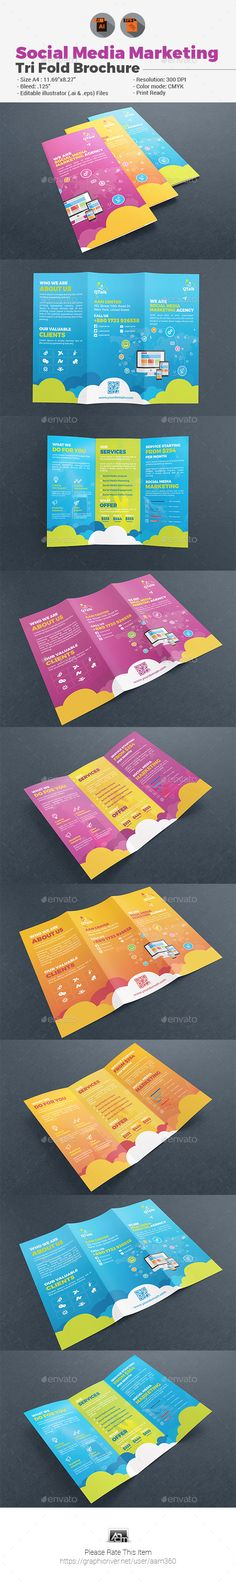 Social Media Marketing TriFold Brochure — Vector EPS #solutions #social network • Available here → https://graphicriver.net/item/social-media-marketing-trifold-brochure/19593008?ref=pxcr